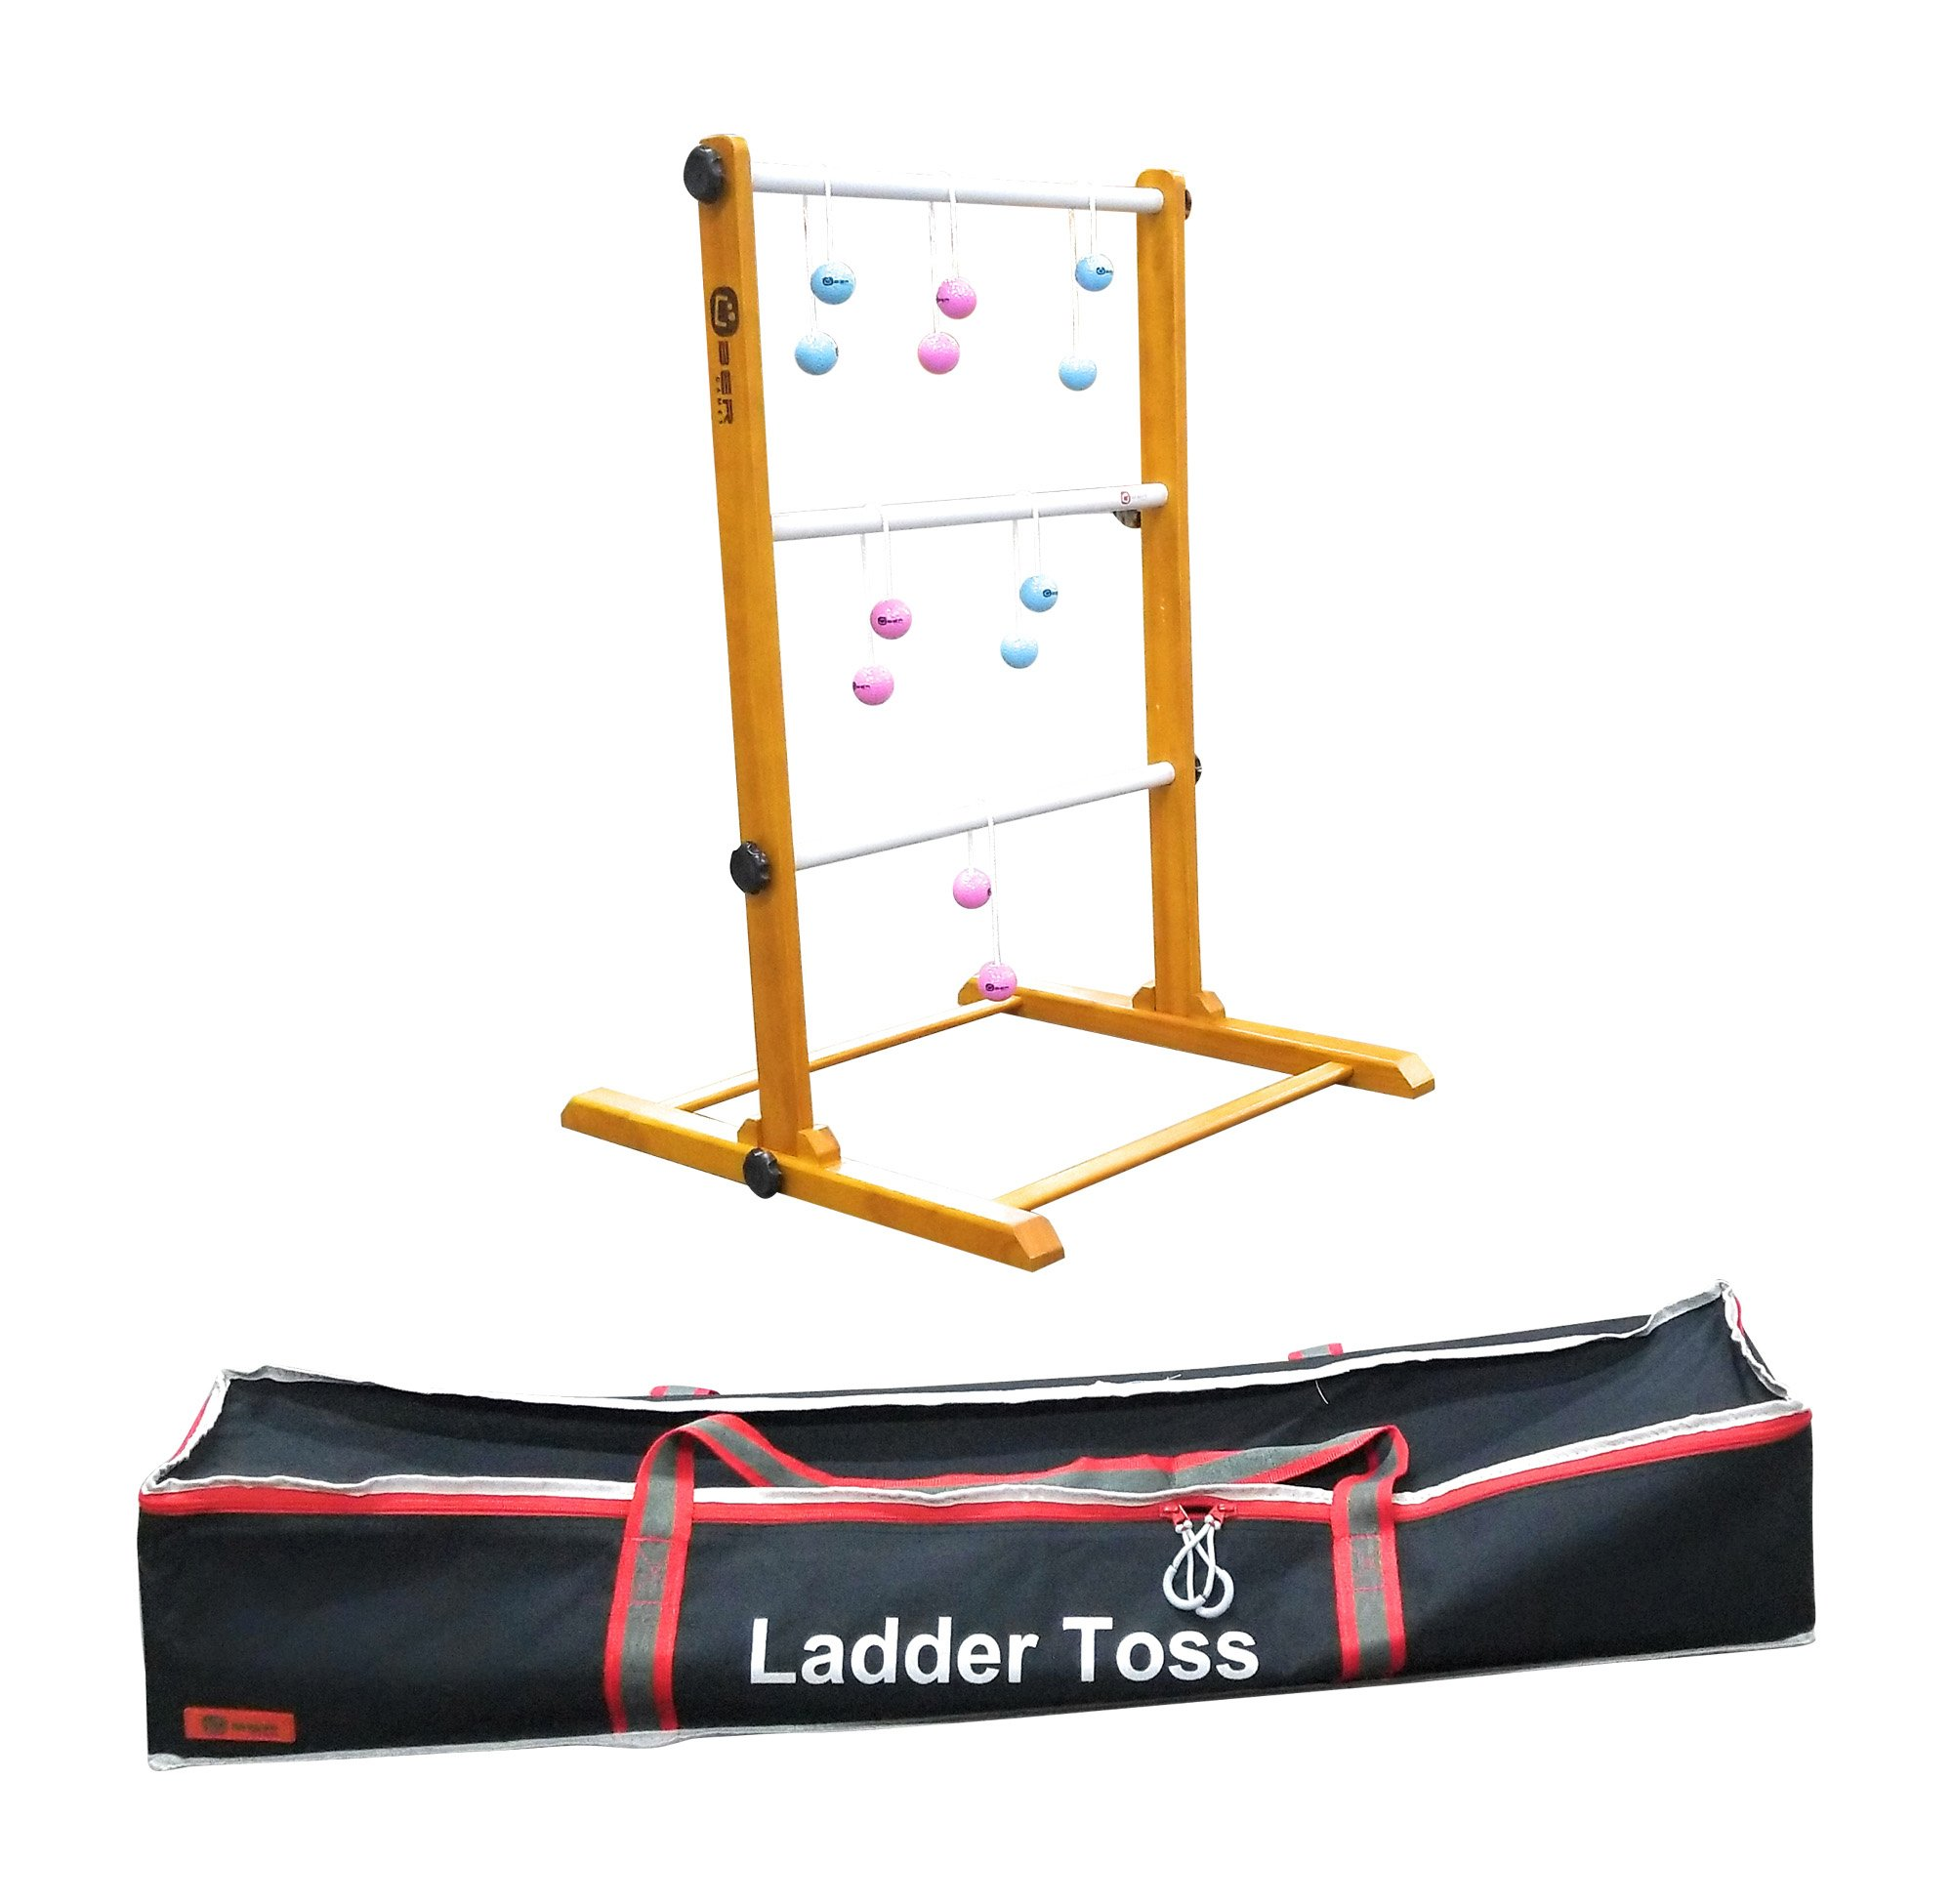 Uber Games Ladder Toss - Single - Pink and Sky Blue Bolas by Uber Games